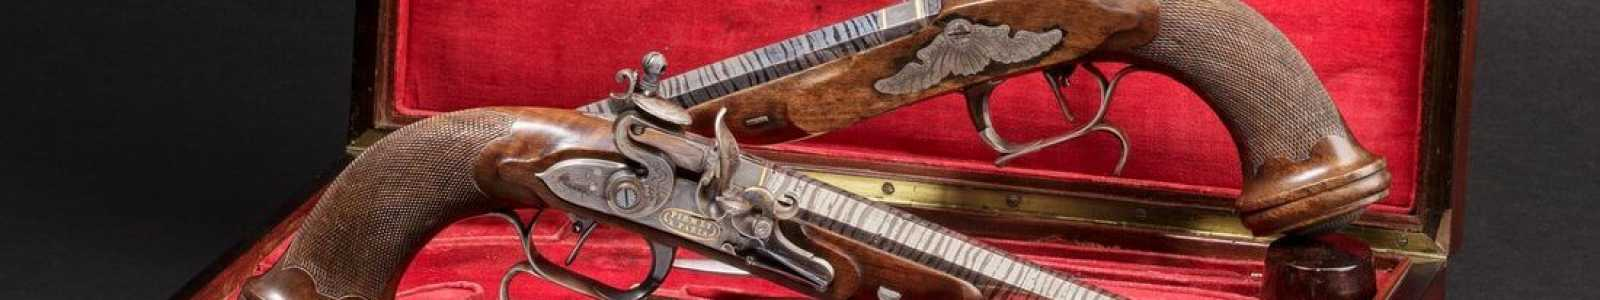 A82s - firearms of five centuries